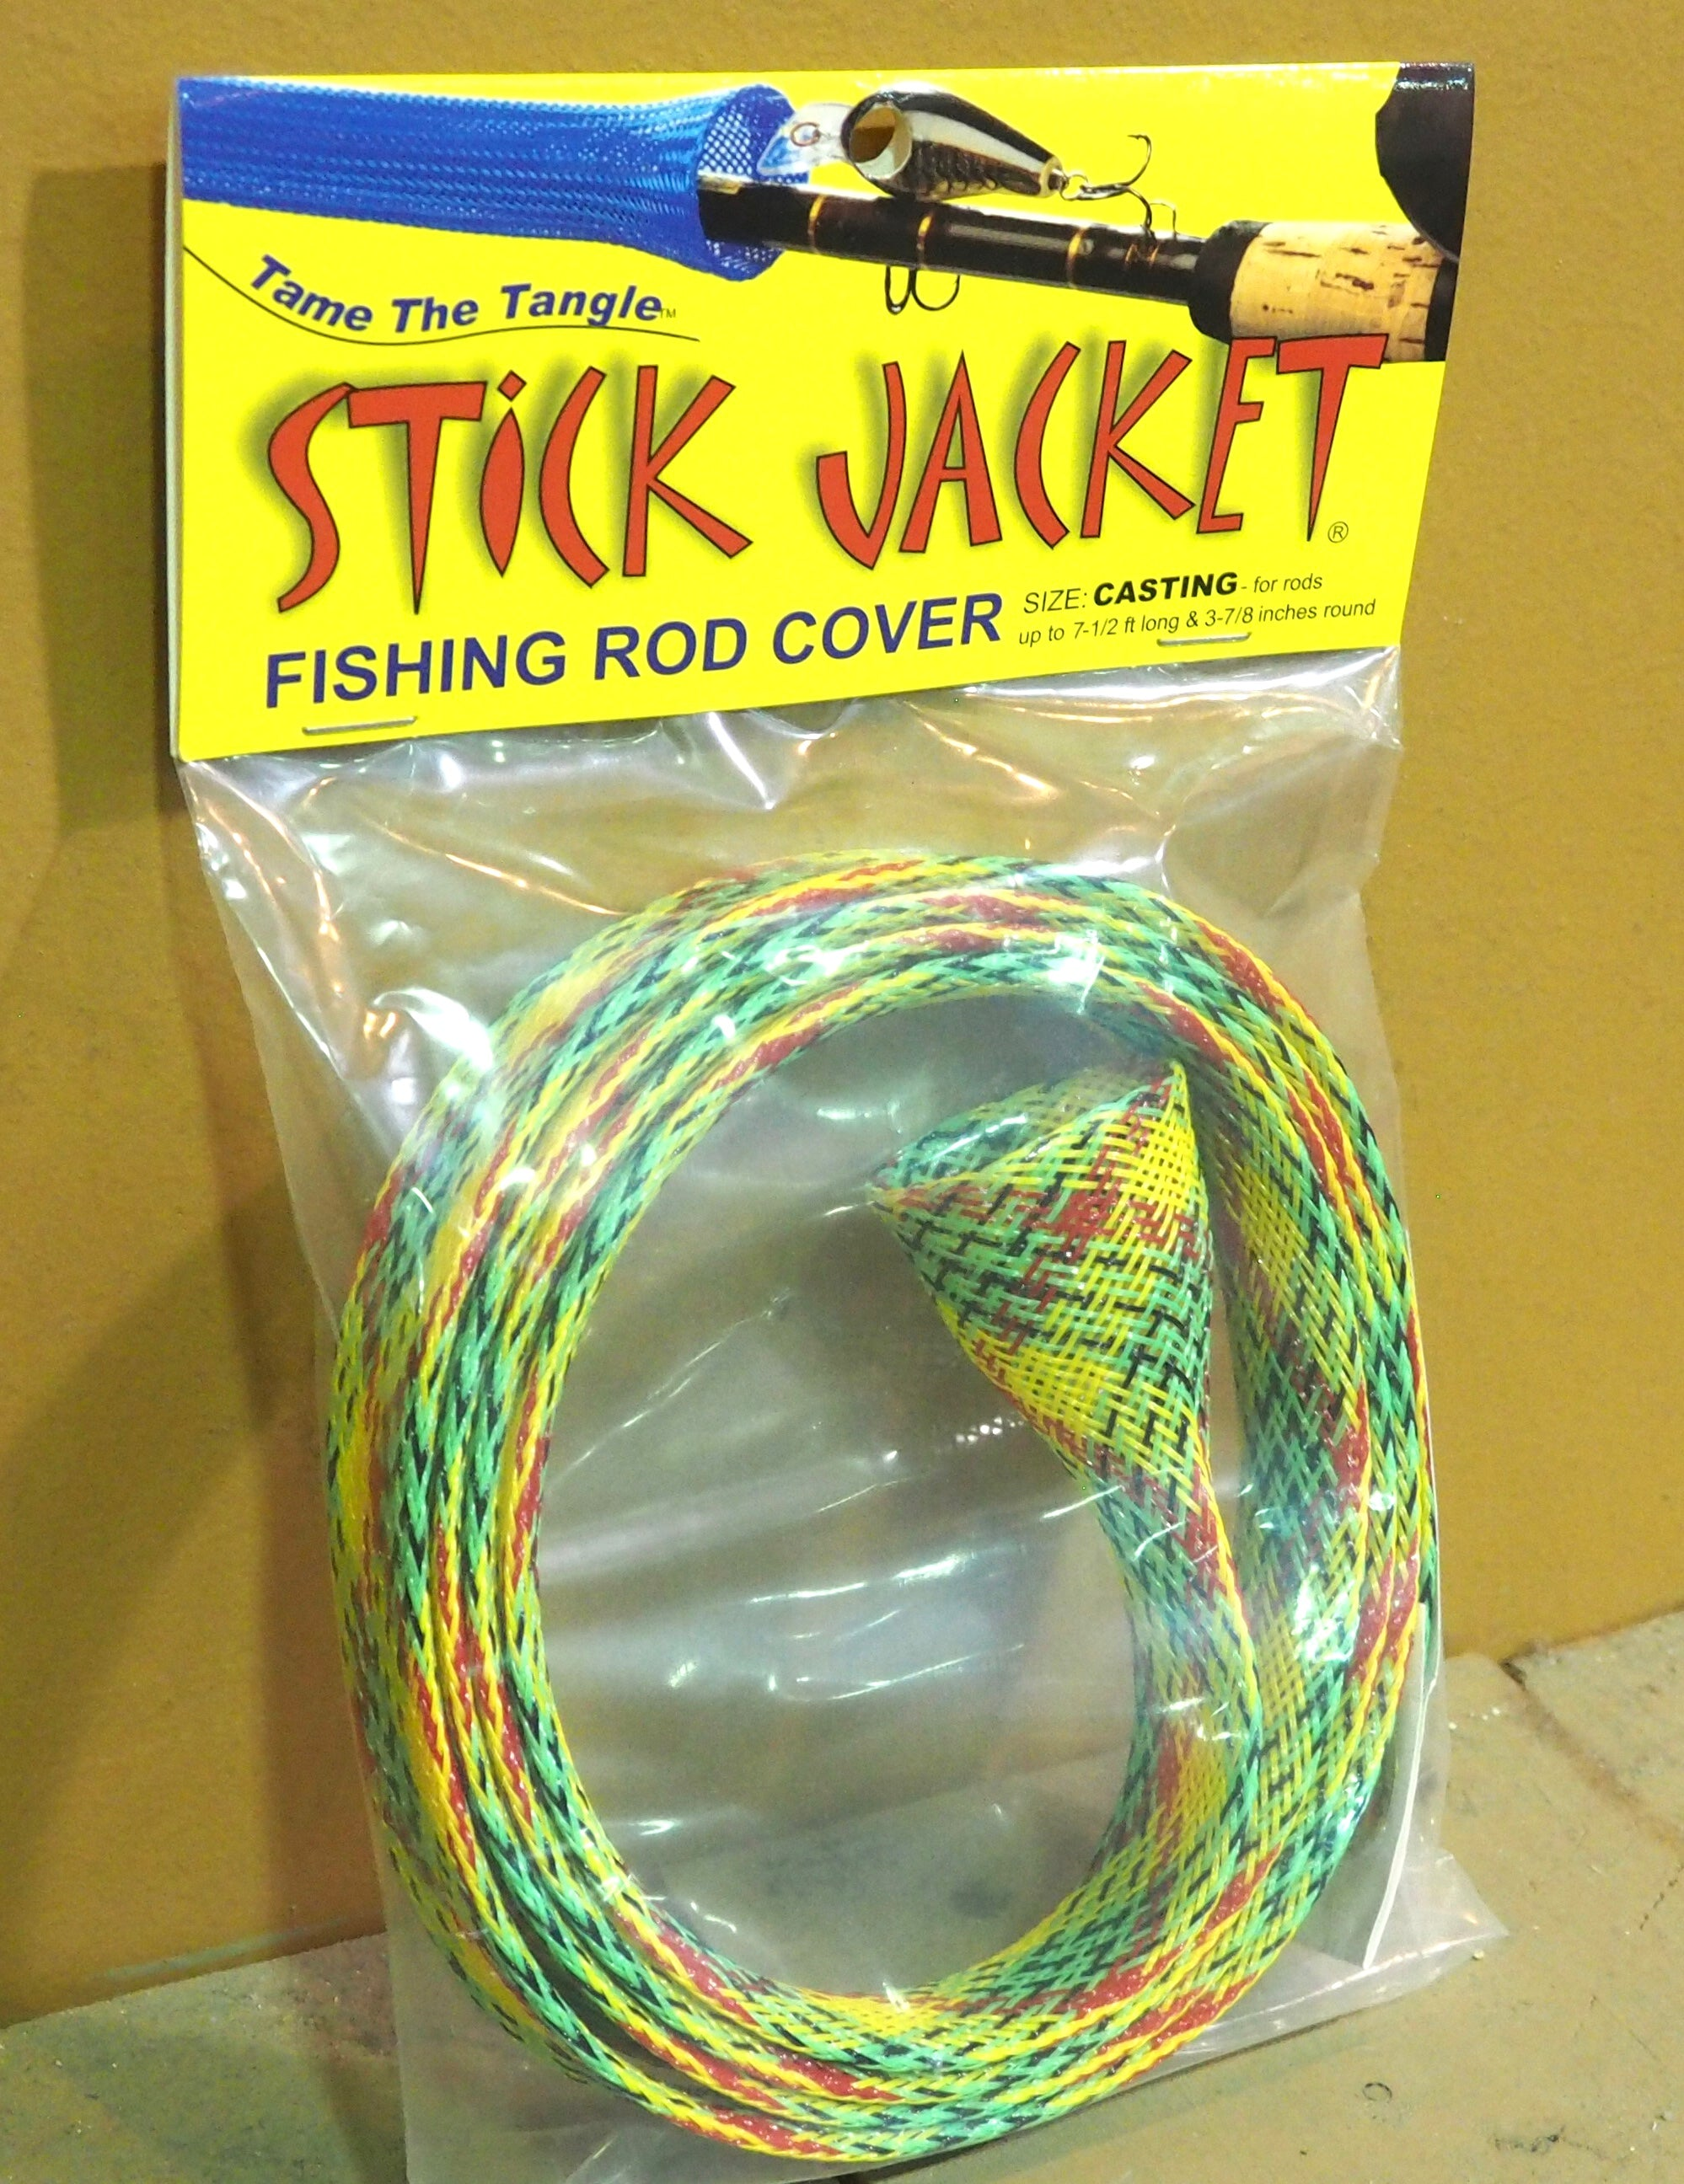 Stick Jacket Fishing Rod Covers Casting Size